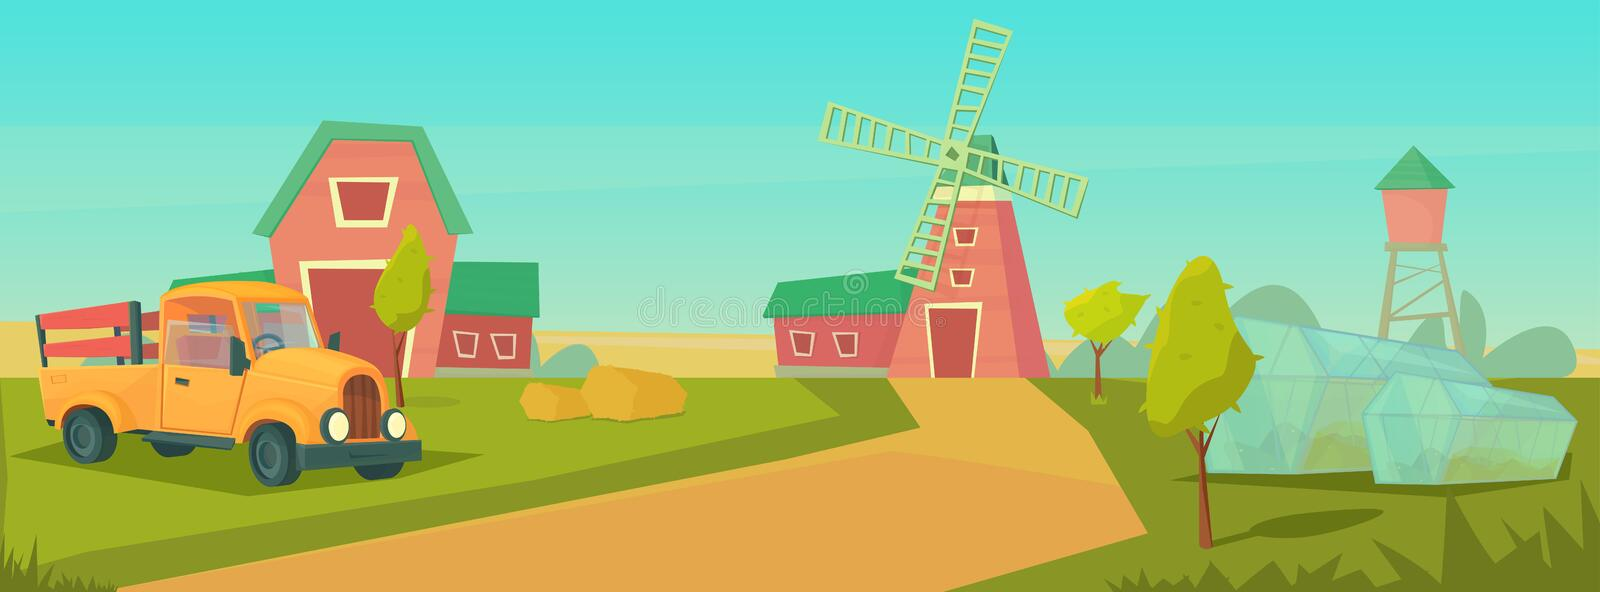 Agriculture. Farm rural landscape with orange truck, red barn, house and ranch, water tower and haystack. Agriculture. Farm rural landscape with orange truck stock illustration